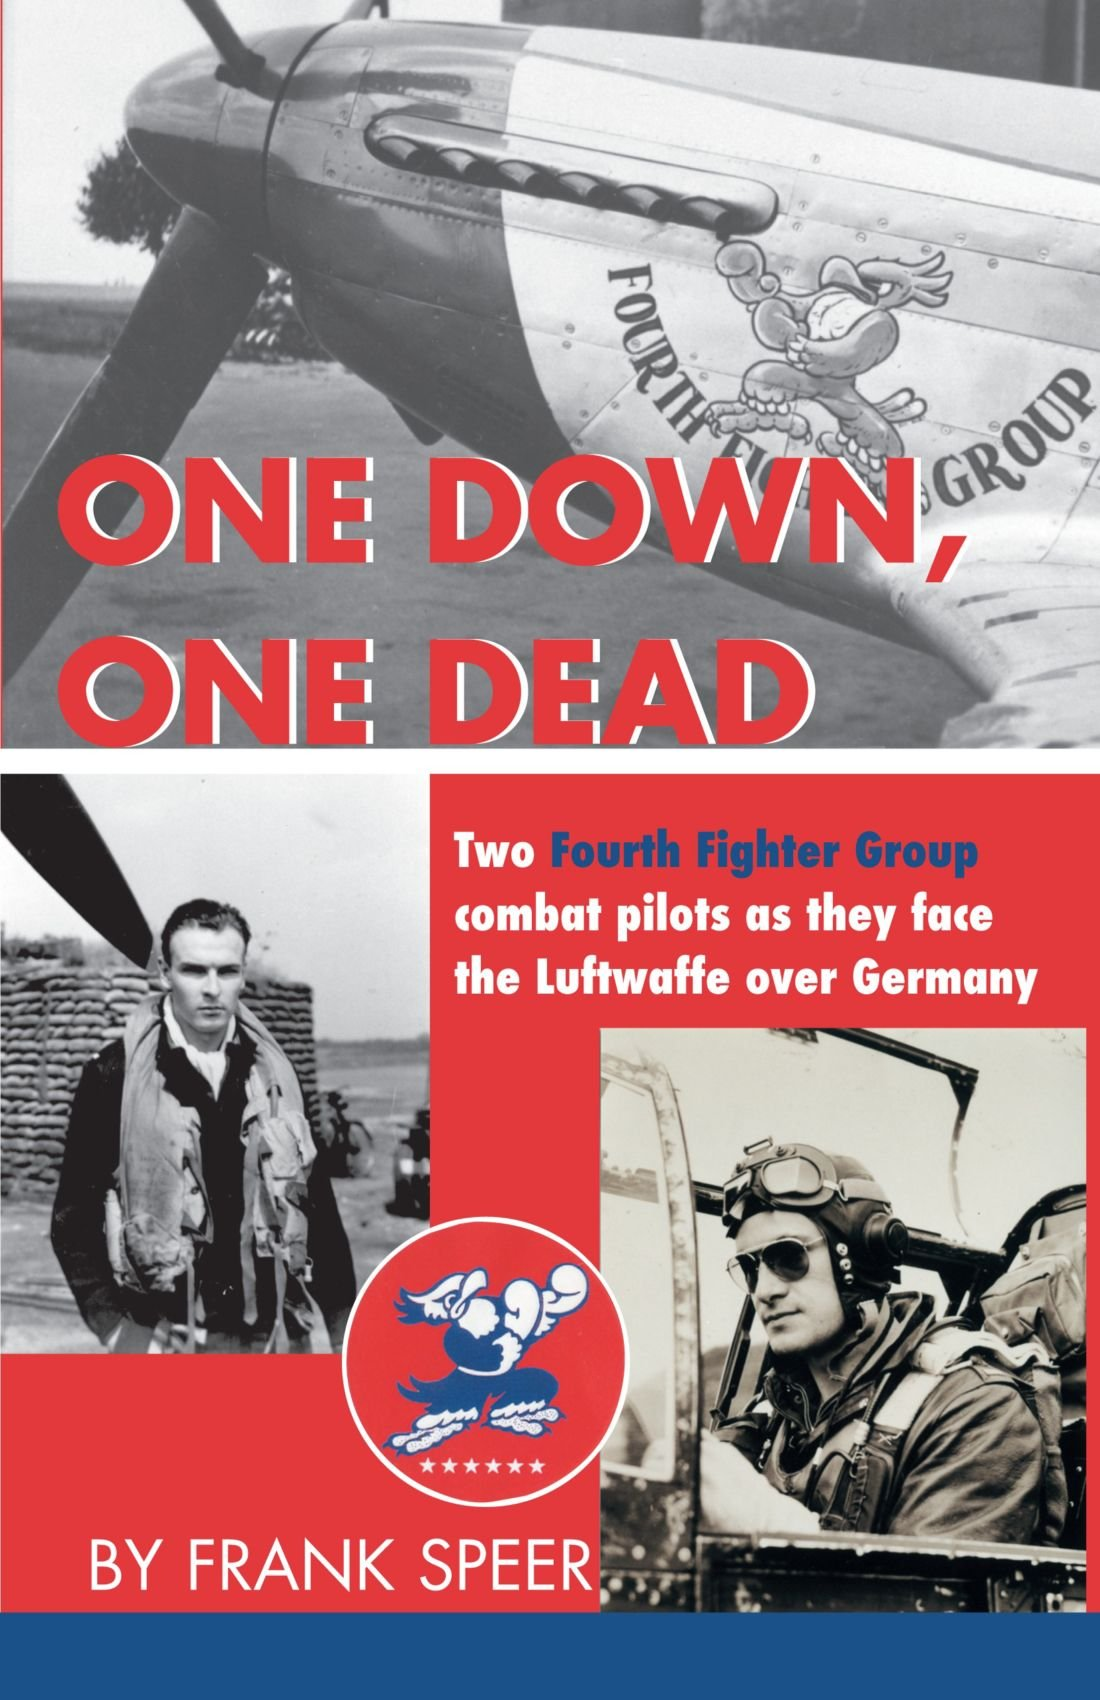 One Down, One Dead: The personal adventures of two Fourth Fighter Group combat pilots as they face the Luftwaffe over Germany ebook